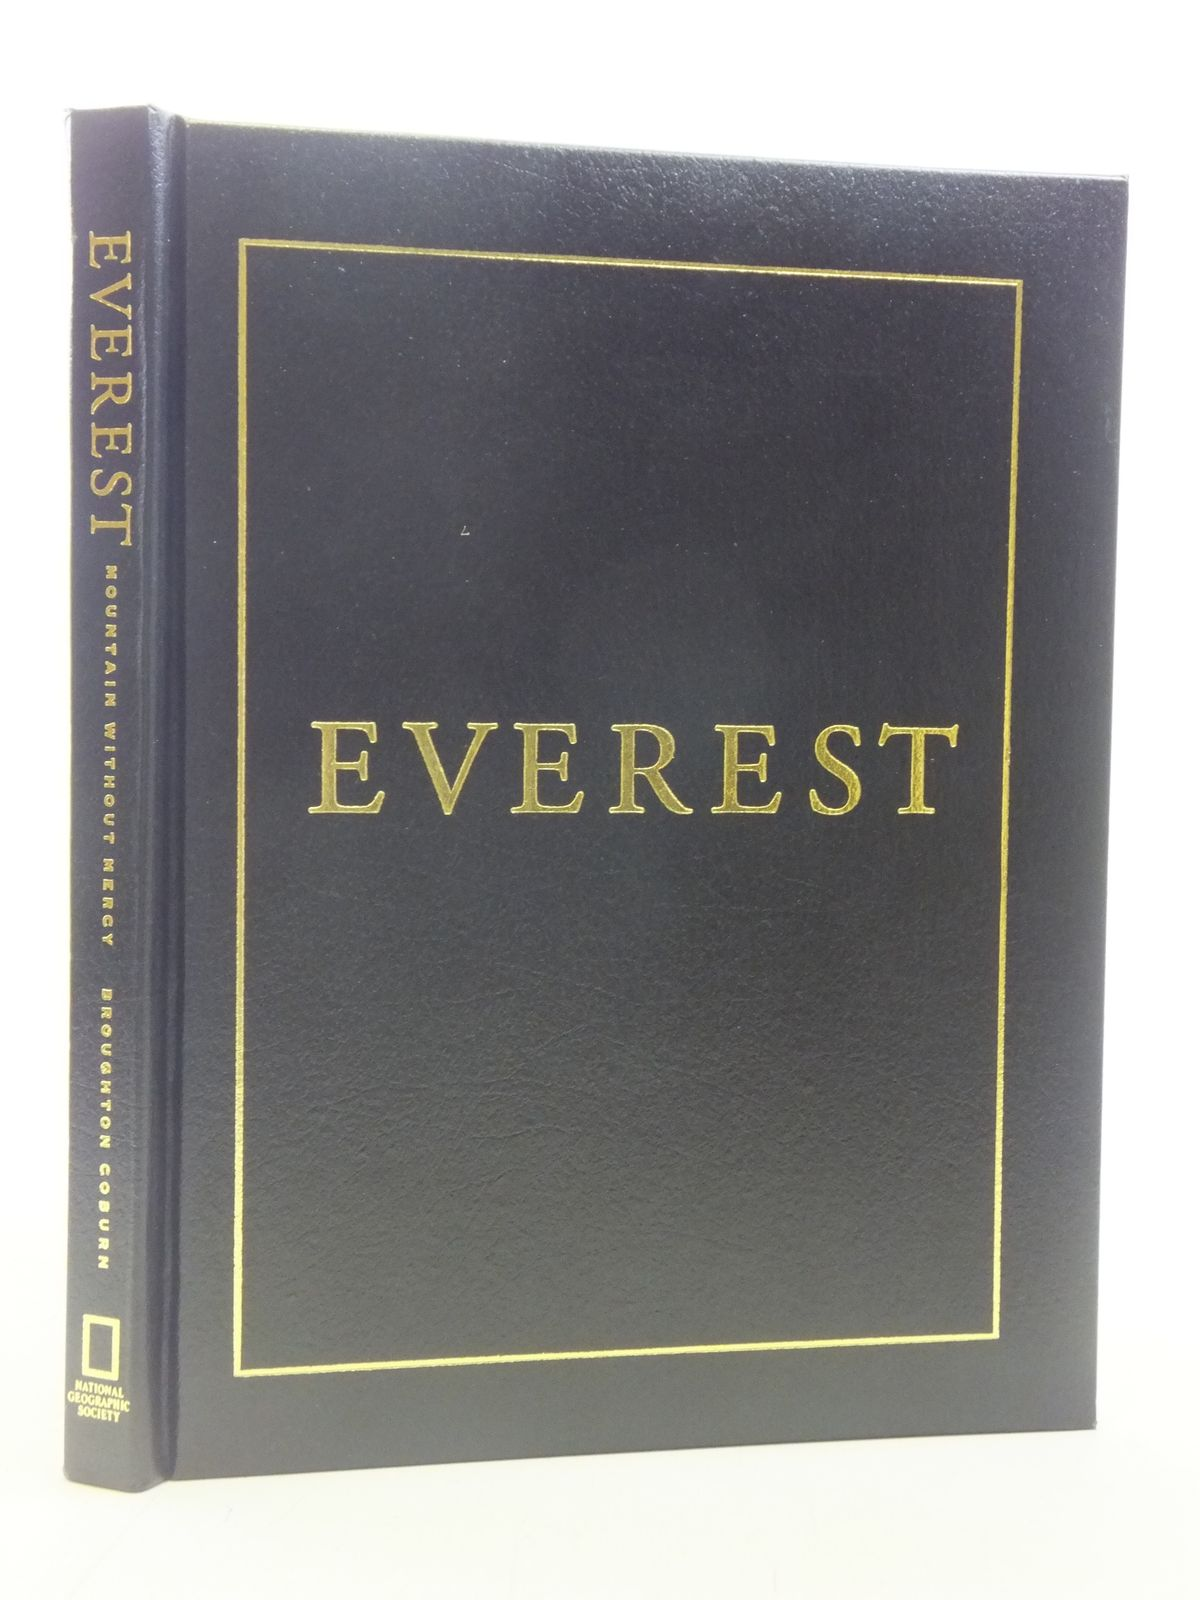 Photo of EVEREST MOUNTAIN WITHOUT MERCY written by Coburn, Broughton published by National Geographic Society (STOCK CODE: 1606236)  for sale by Stella & Rose's Books